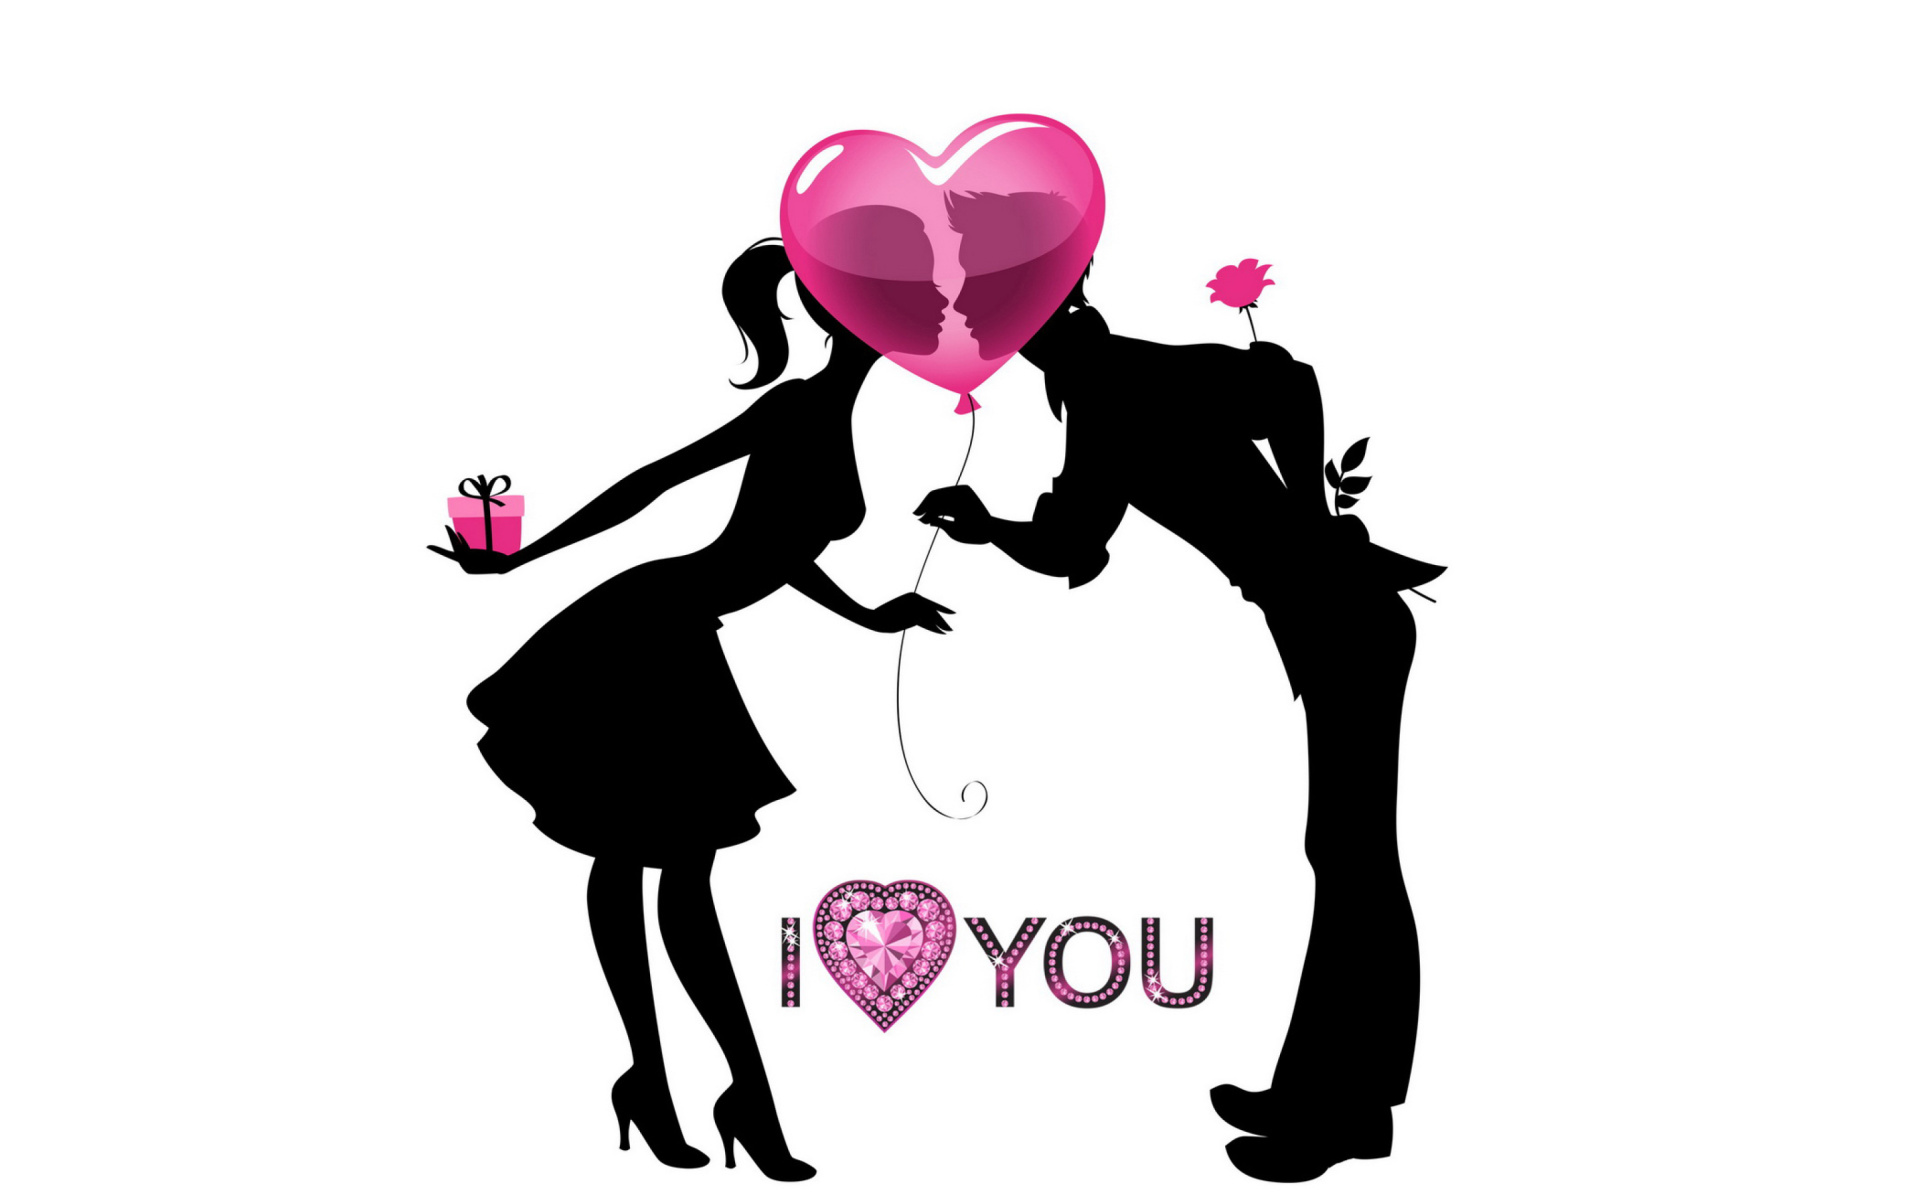 Love Wallpaper Hd For Mobile 497288 - Happy Valentine Day Purpose , HD Wallpaper & Backgrounds